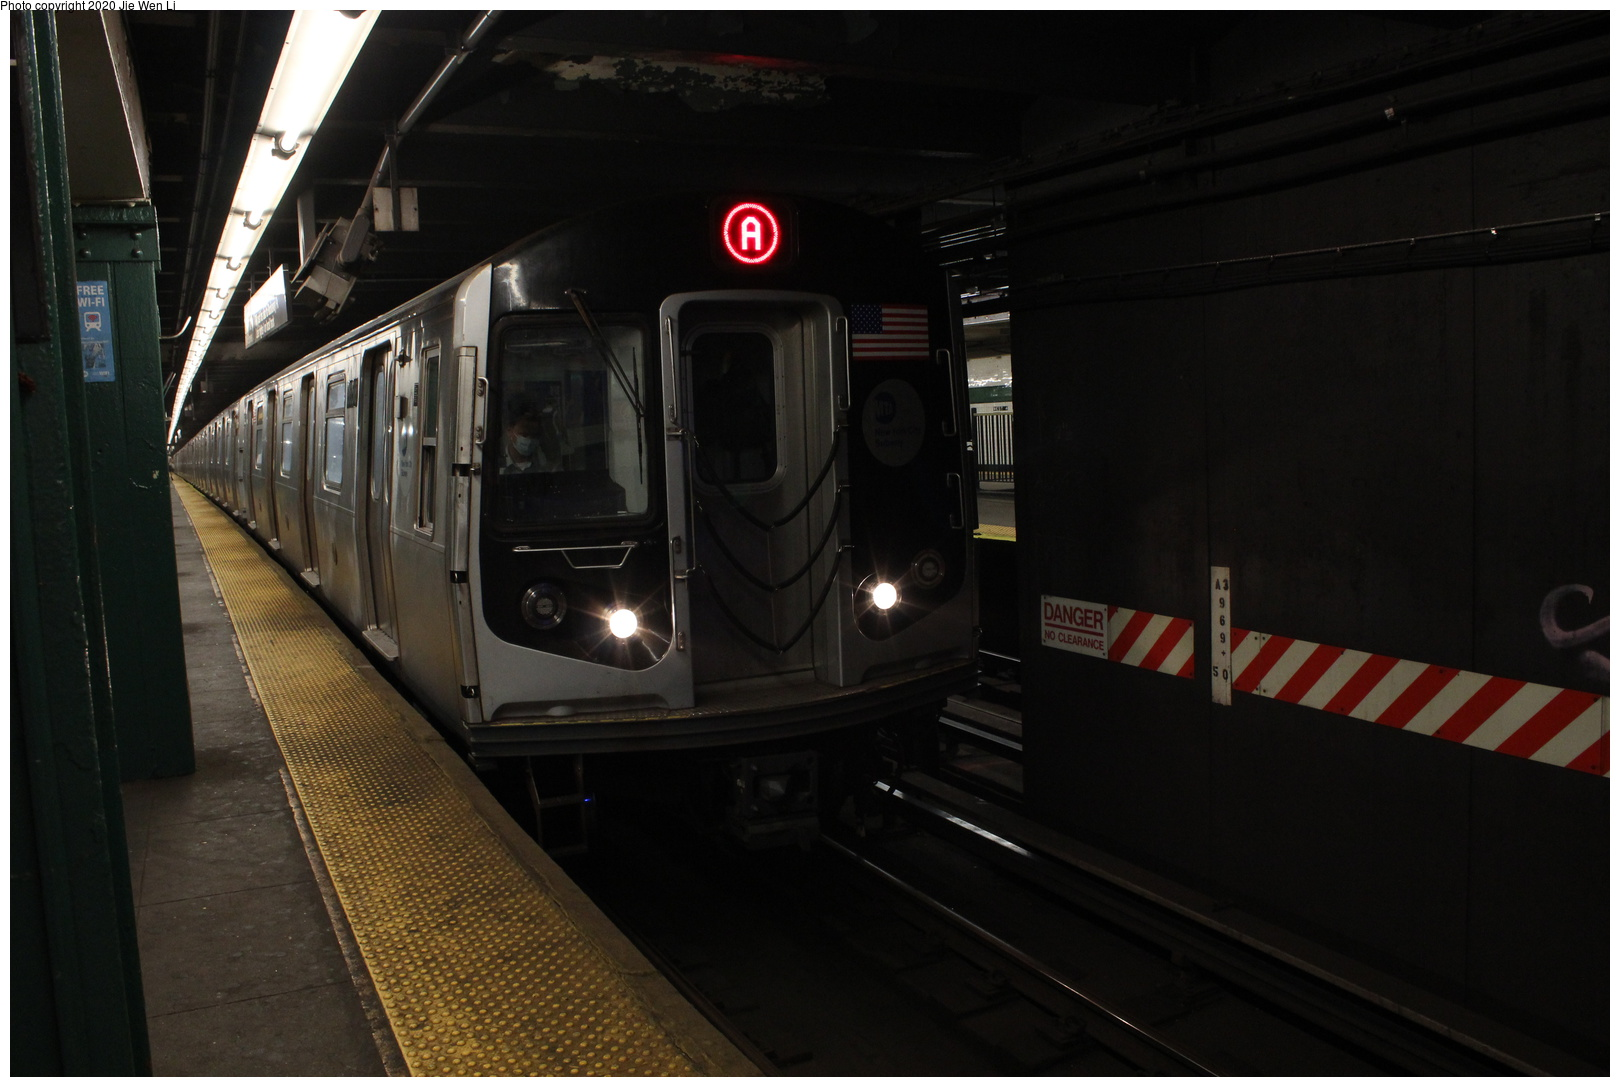 (245k, 1044x684)<br><b>Country:</b> United States<br><b>City:</b> New York<br><b>System:</b> New York City Transit<br><b>Line:</b> IRT Flushing Line<br><b>Location:</b> Willets Point/Mets (fmr. Shea Stadium) <br><b>Route:</b> 7 Special<br><b>Car:</b> R-29 (St. Louis, 1962)  <br><b>Photo by:</b> Joel Shanus<br><b>Date:</b> 1964<br><b>Viewed (this week/total):</b> 0 / 1882